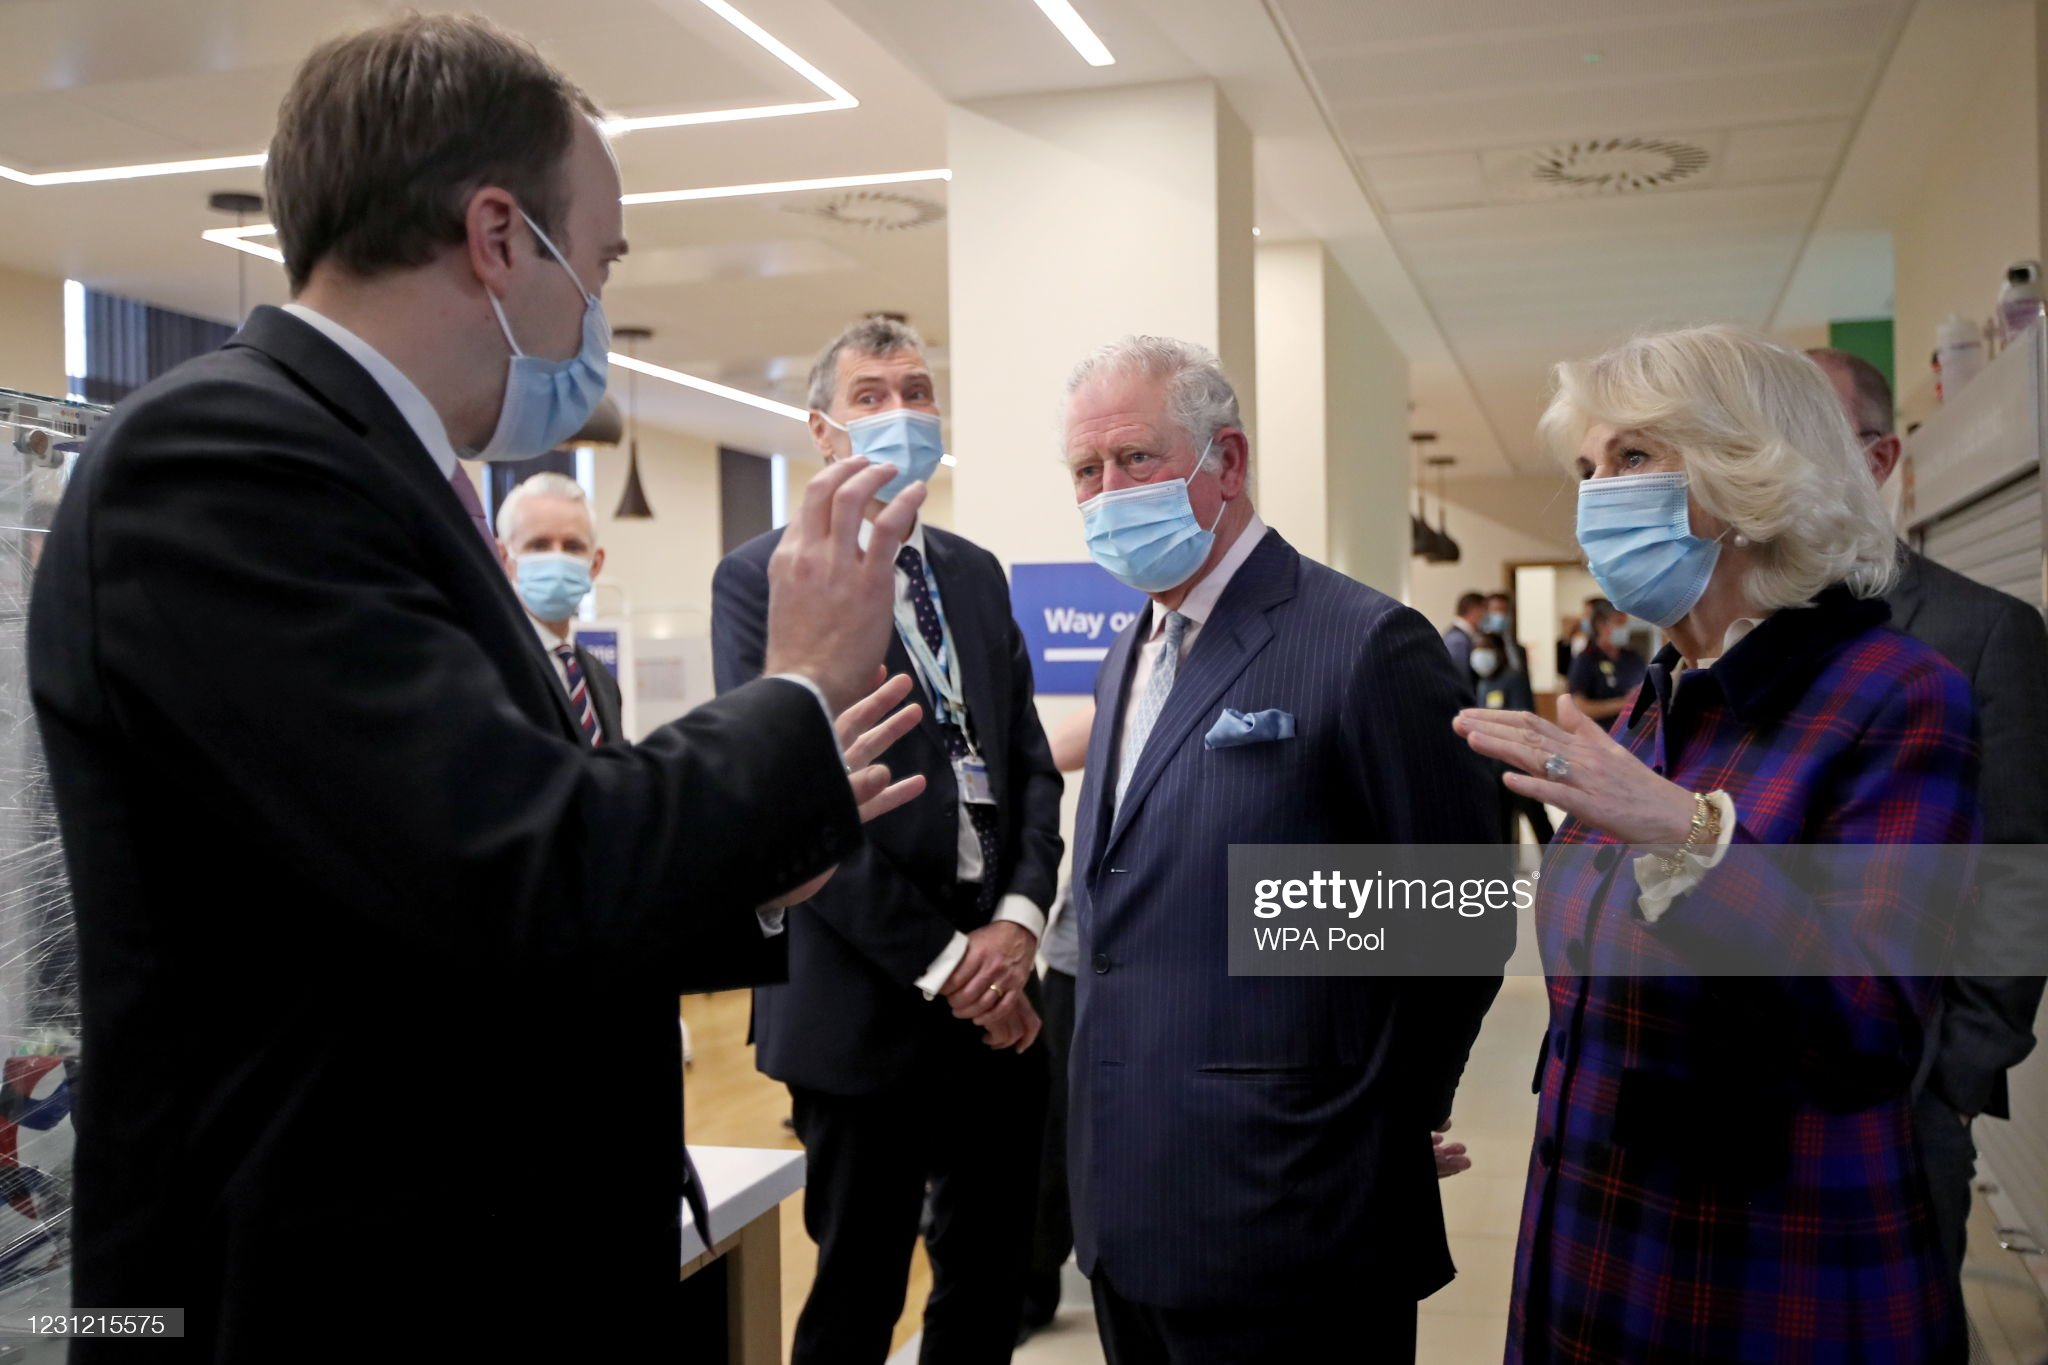 prince-charles-prince-of-wales-and-camilla-duchess-of-cornwall-talk-picture-id1231215575